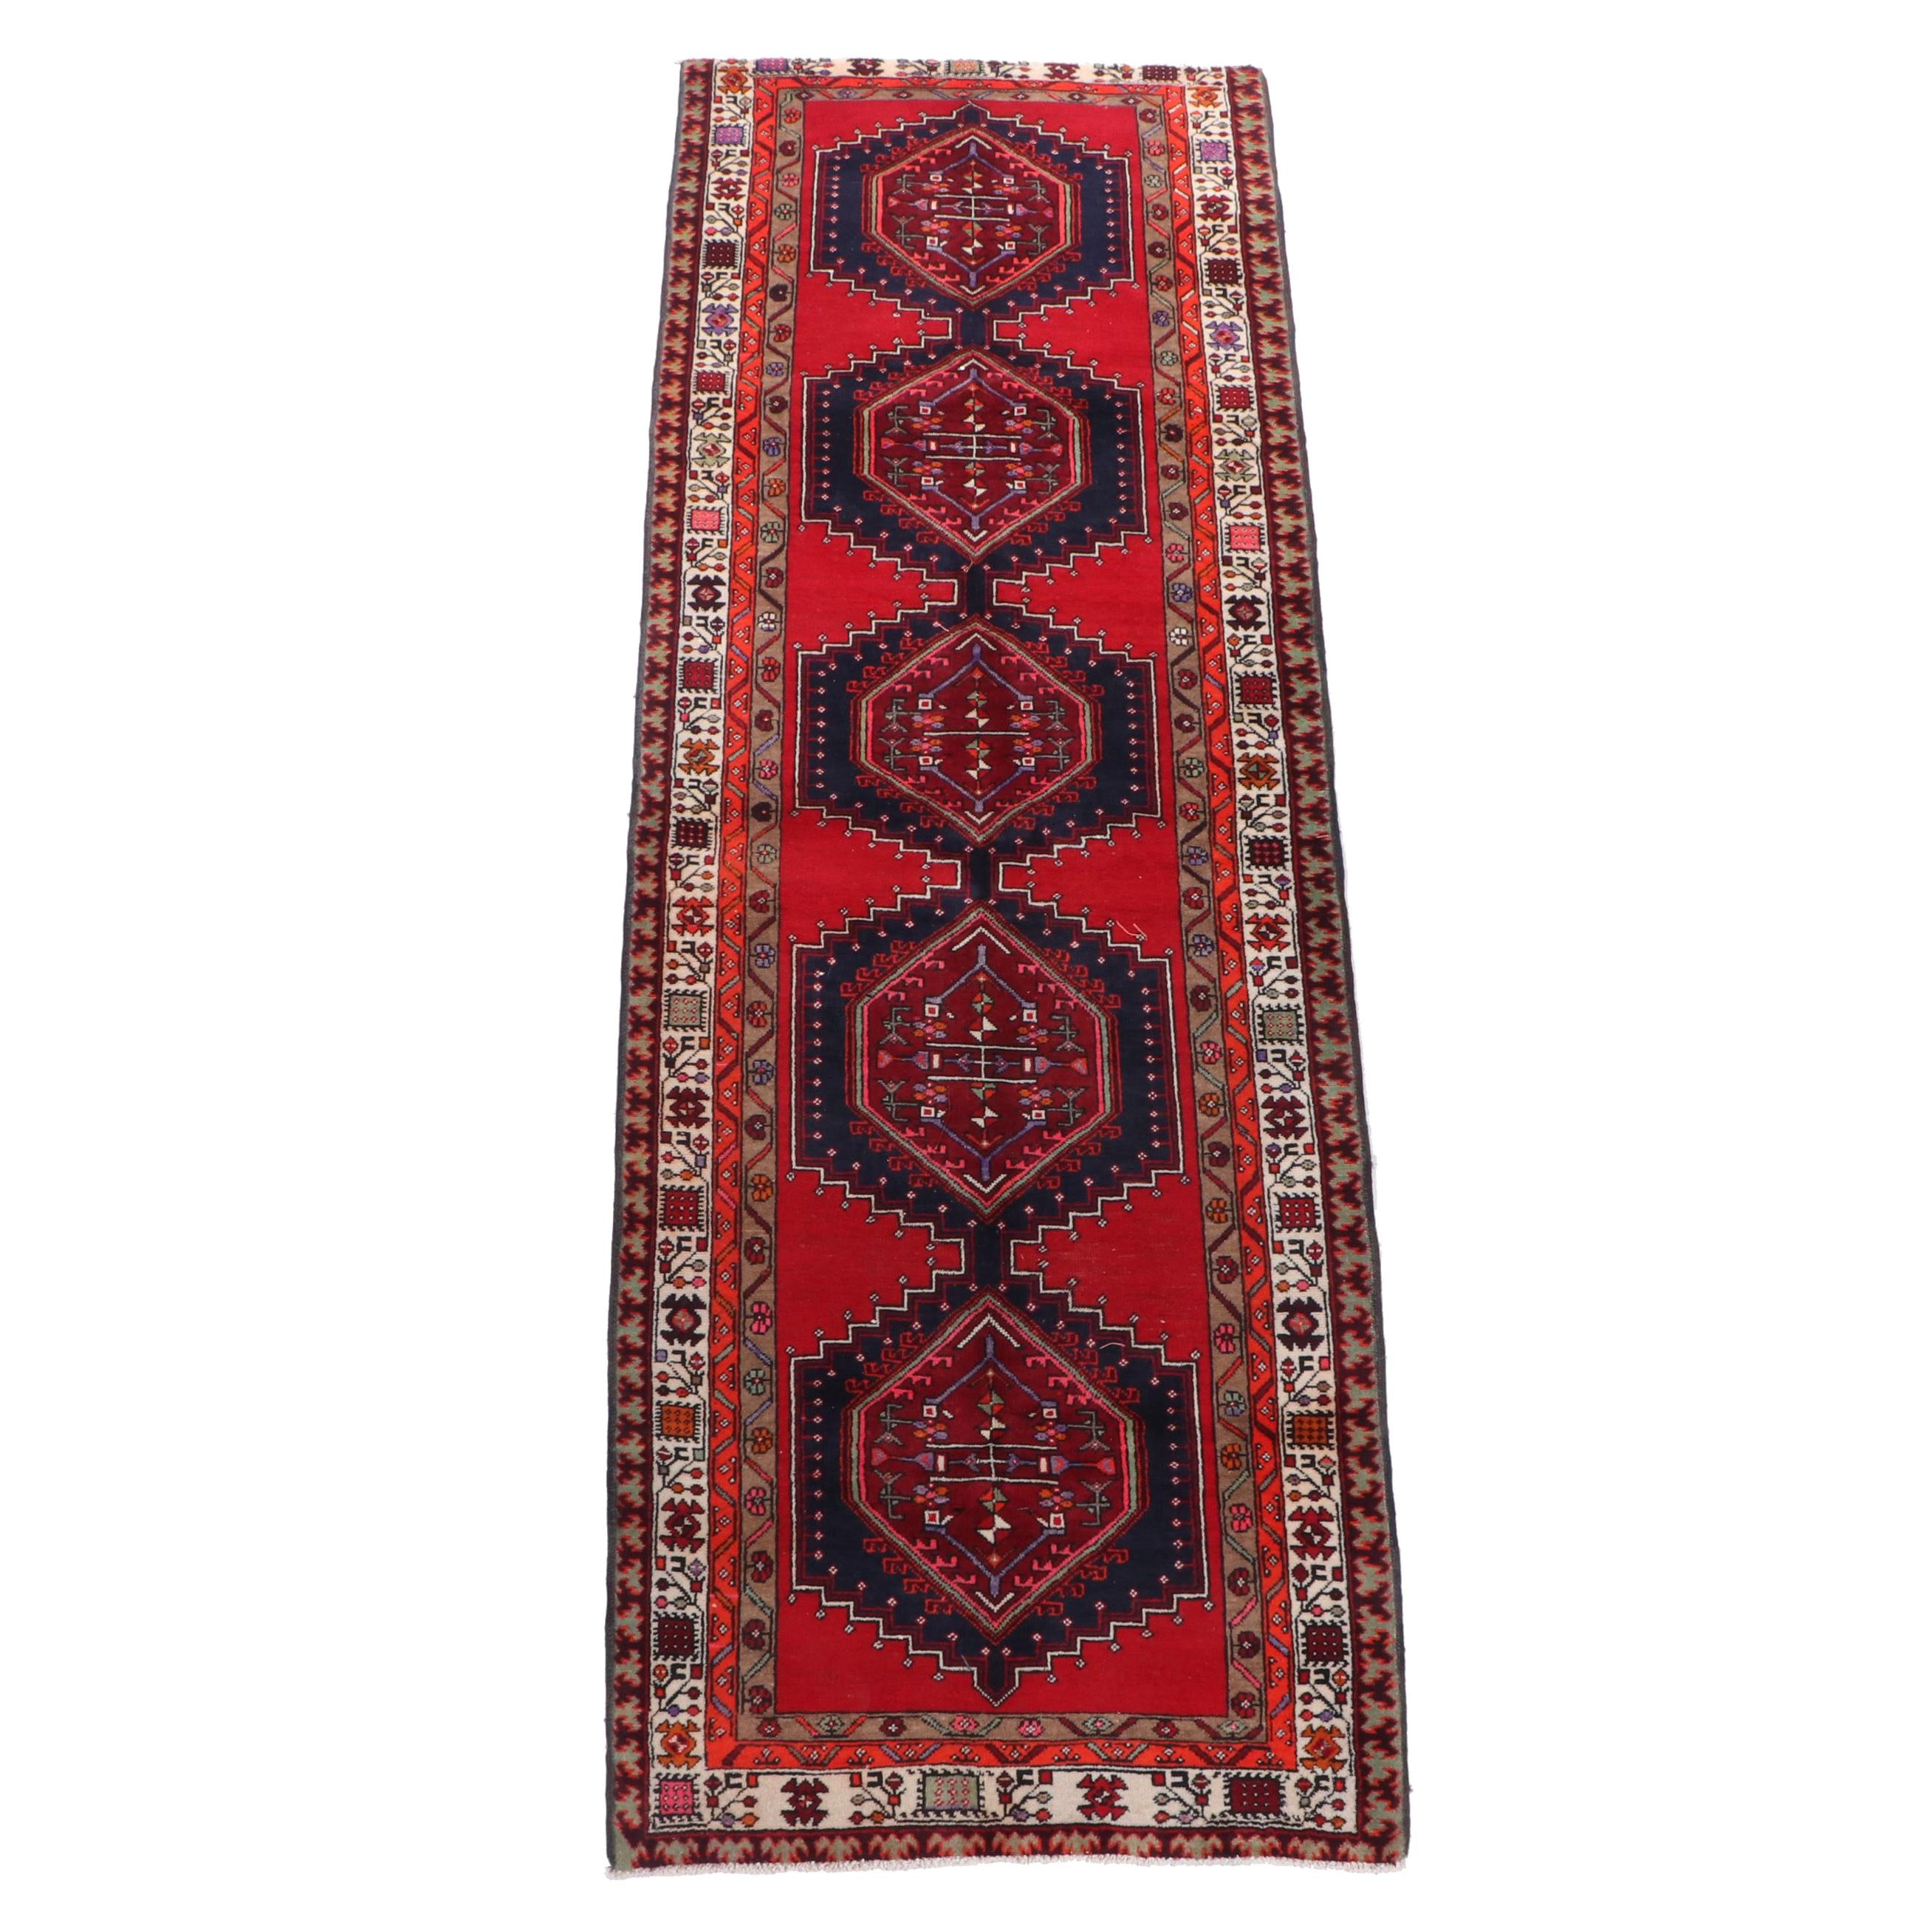 Hand-Knotted Eastern Anatolian Wool Carpet Runner